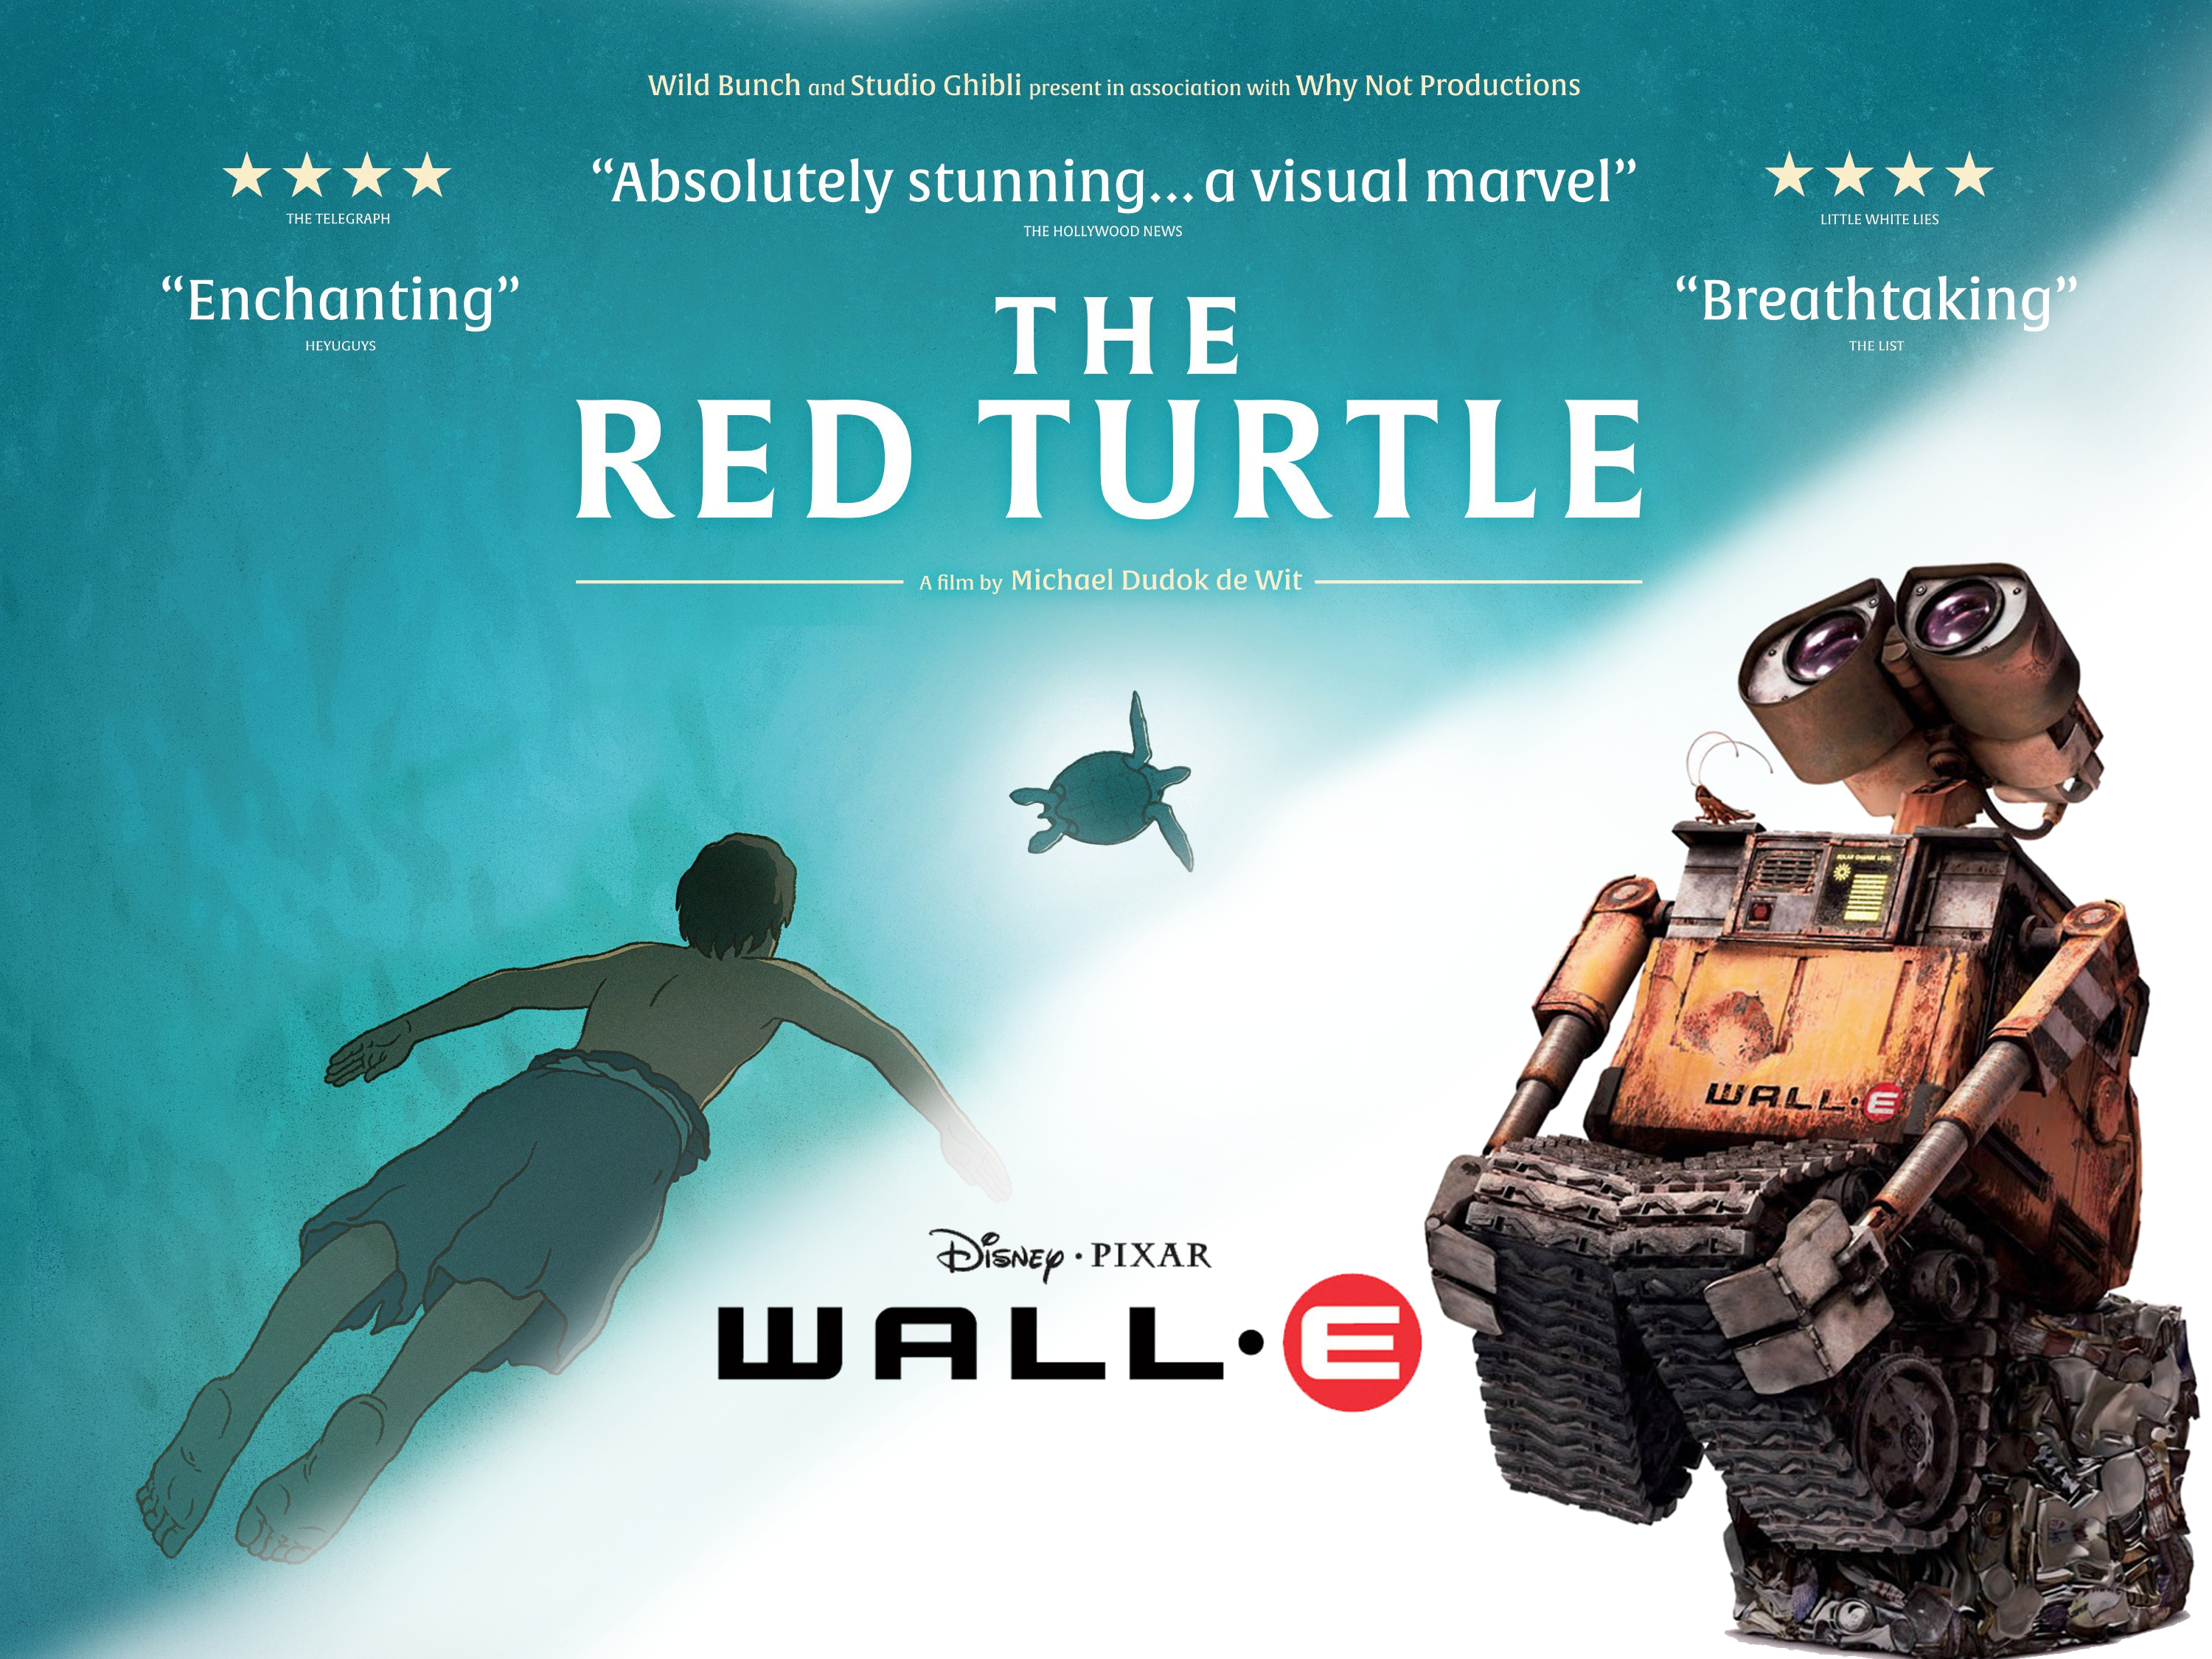 The Sound Barrier Podcast 5 Wall E The Red Turtle Freakytrigger